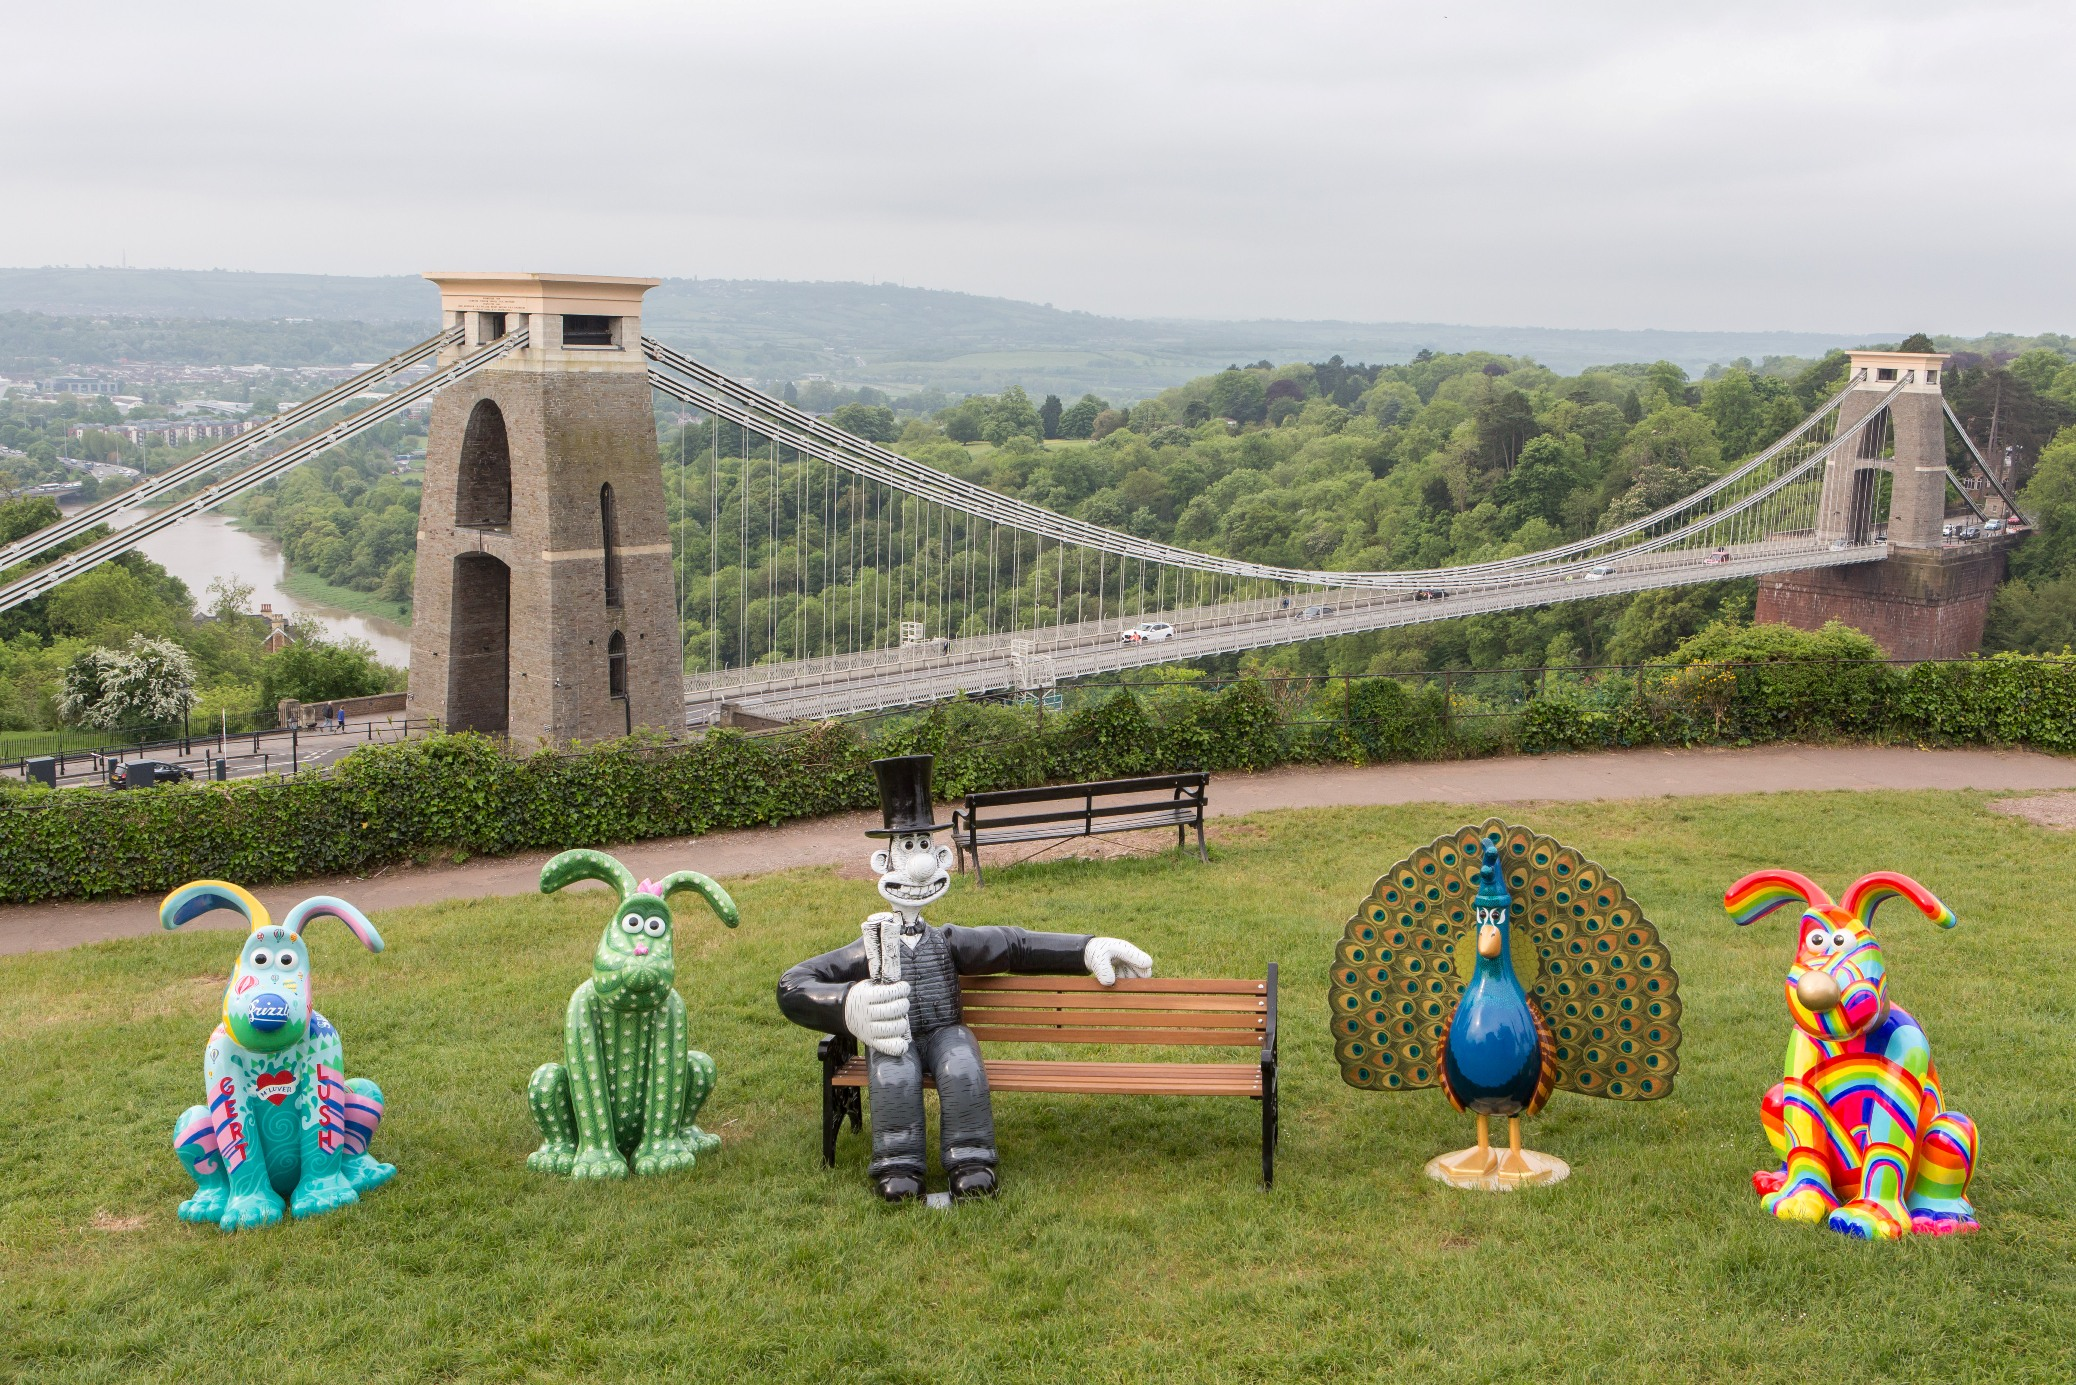 Total Guide to Bristol's Gromit Unleashed 2 Trail